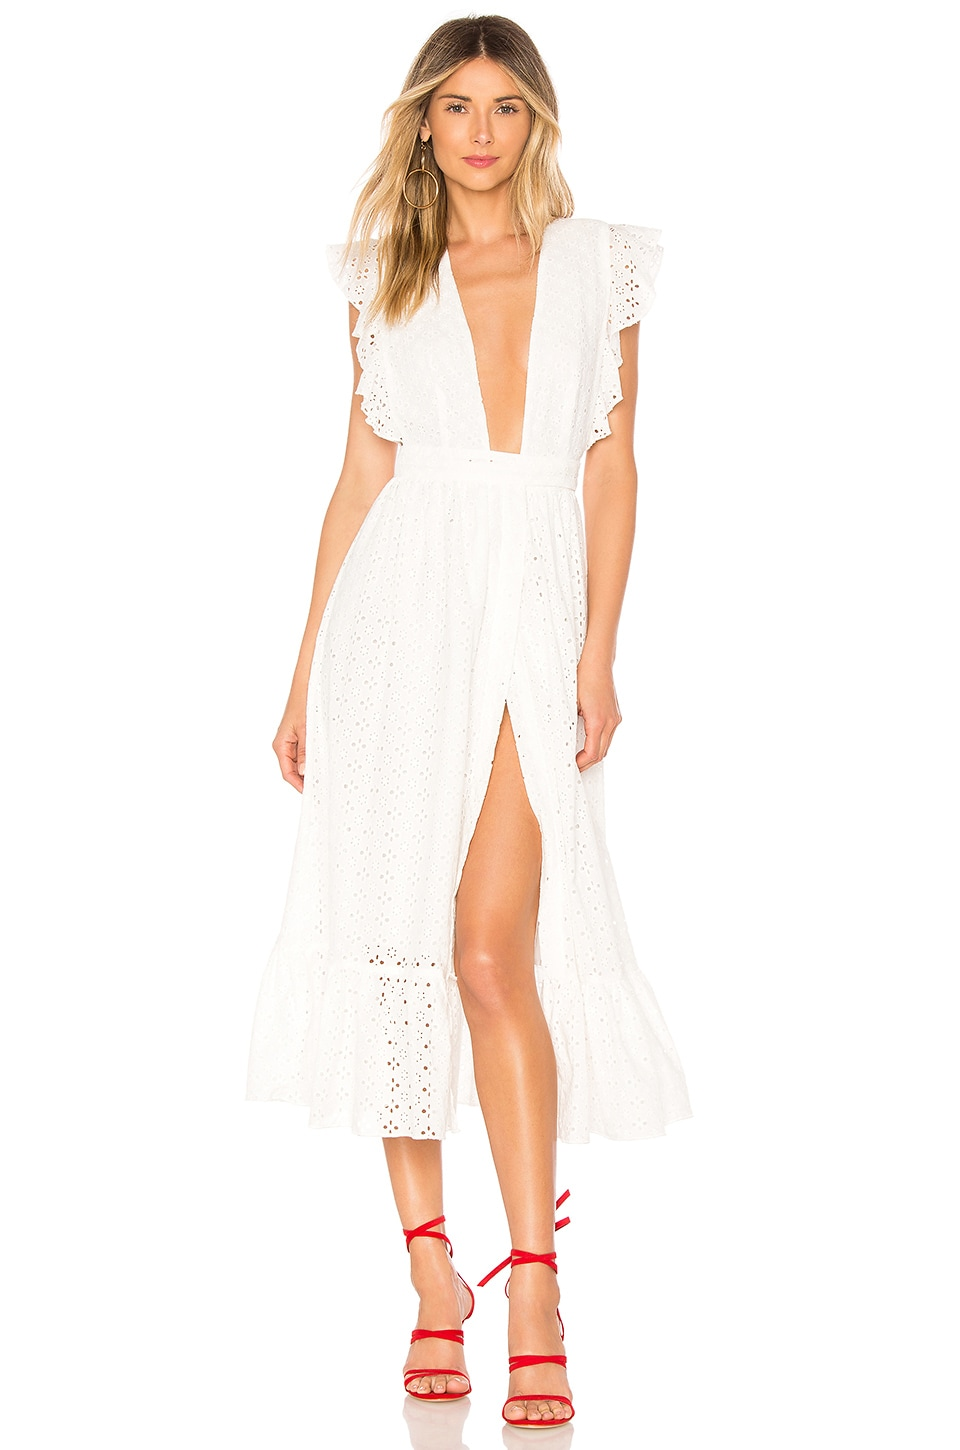 MAJORELLE Mistwood Dress in White